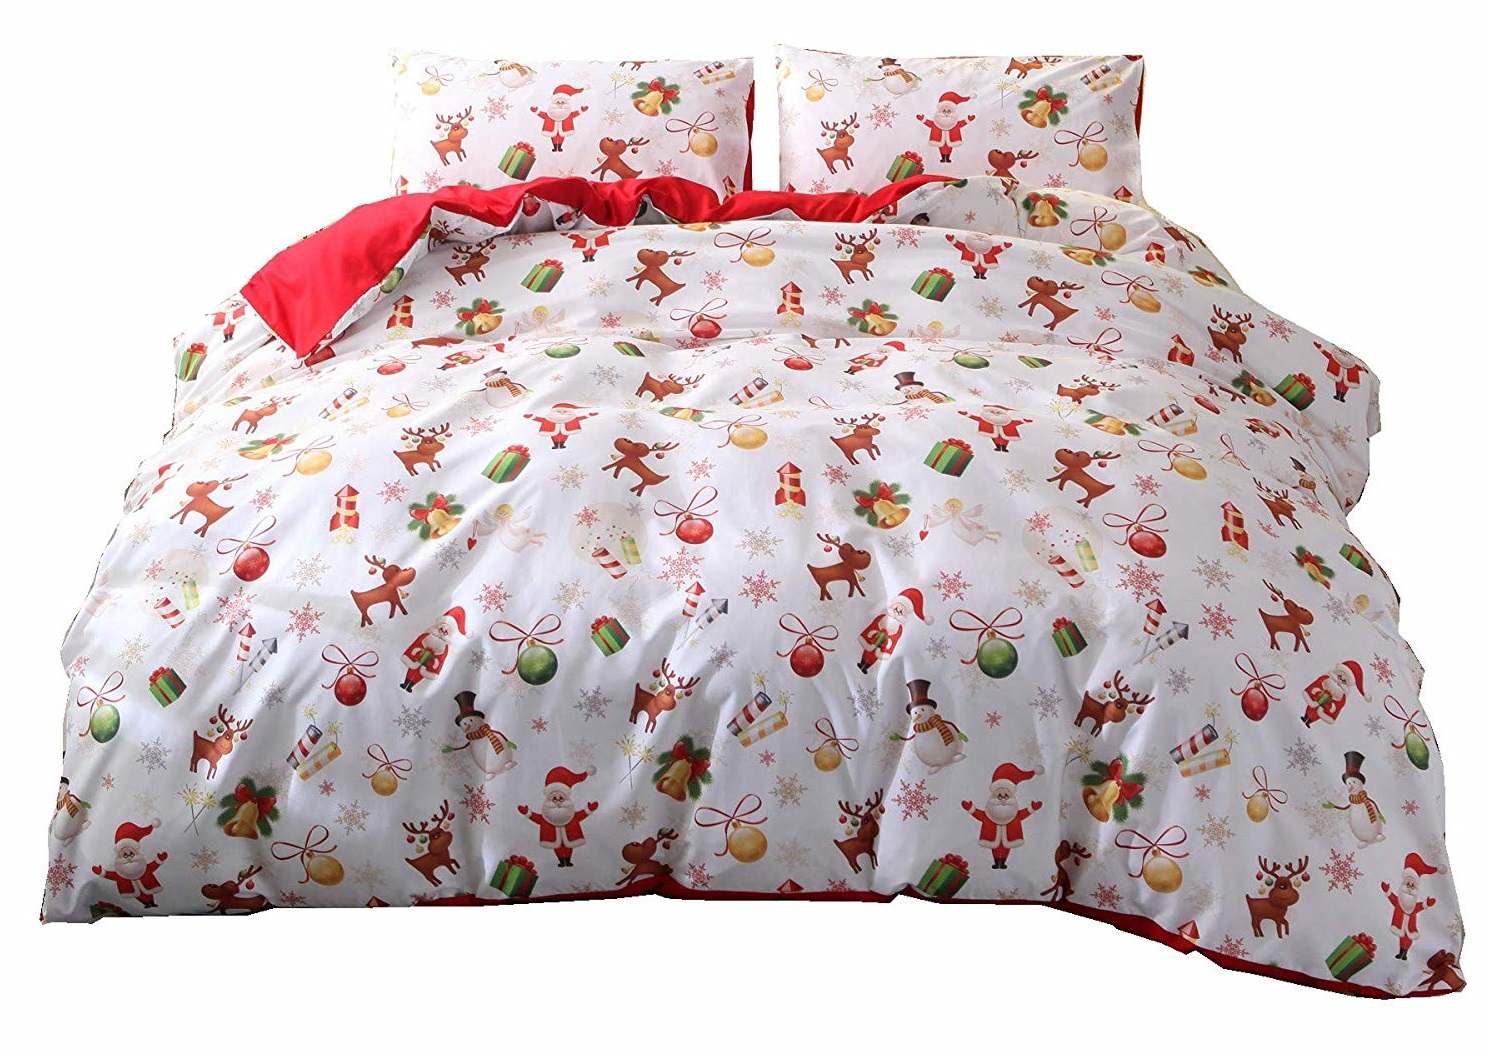 A Nice Night Christmas Duvet Cover Set - Buy Christmas Duvet Covers